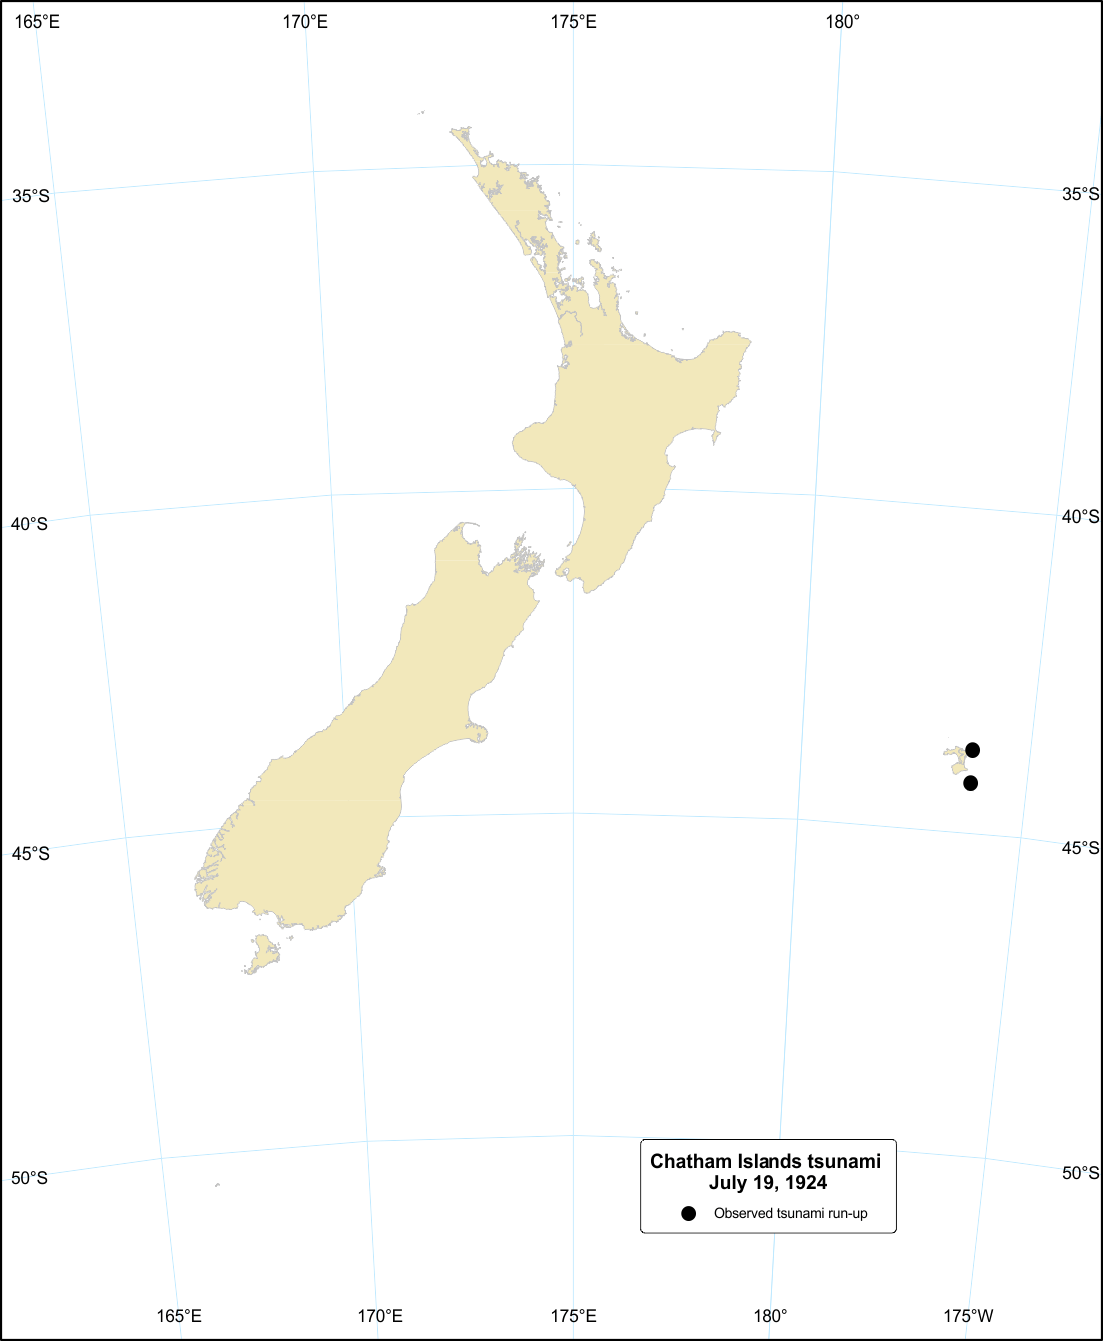 Image for Chatham Islands tsunami, 19 July 1924.